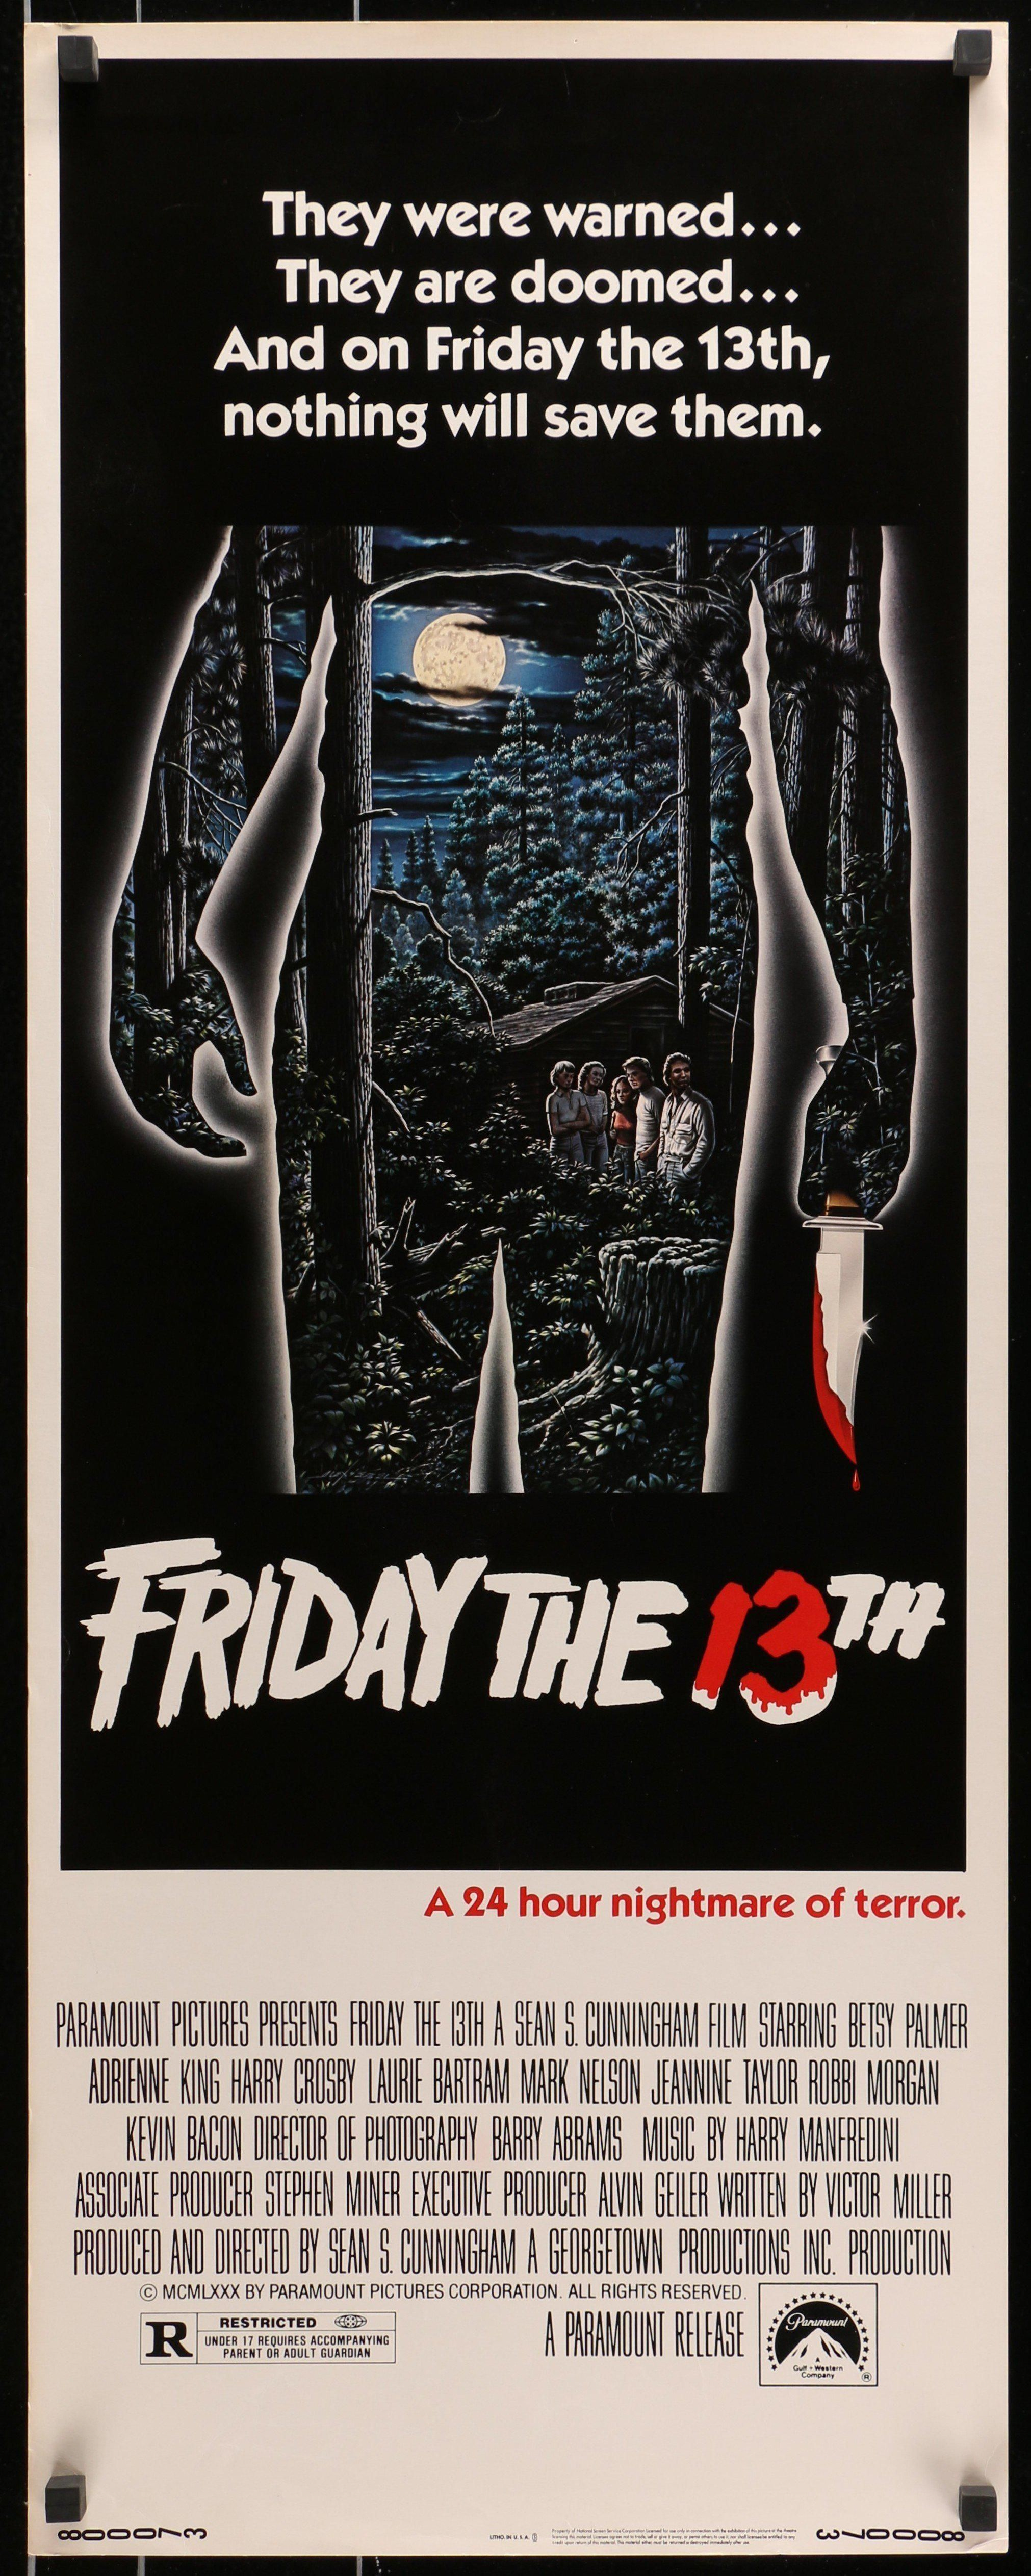 Friday The 13th 1980 Friday The 13th Movie Posters Vintage Movie Posters